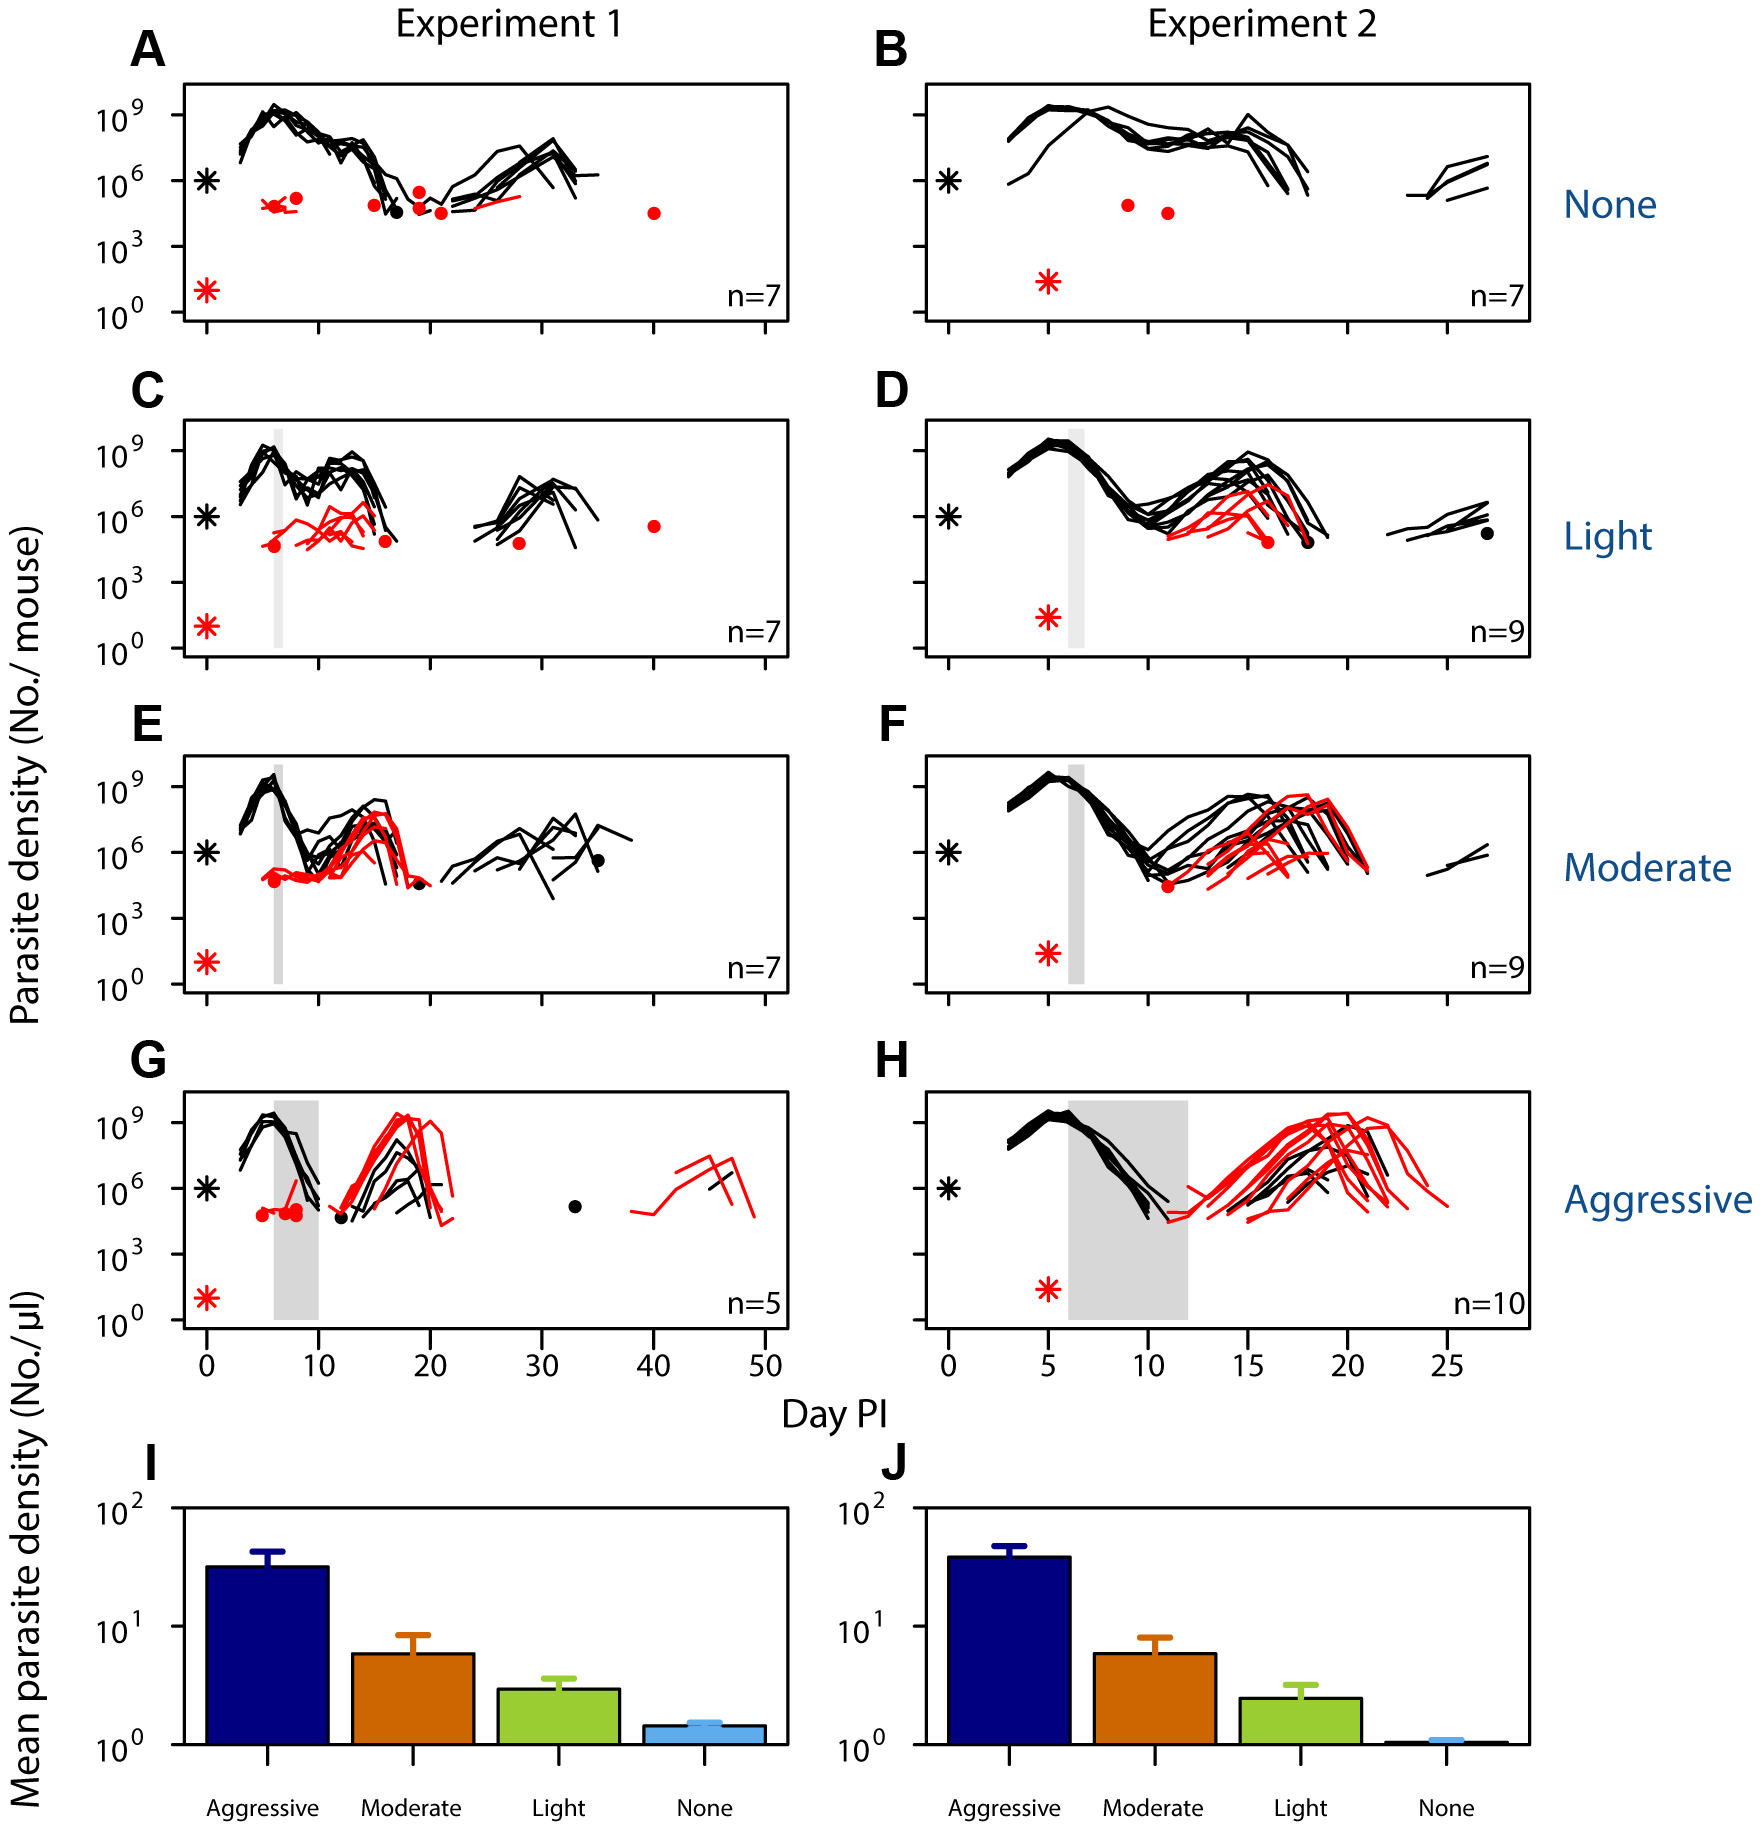 Selection of resistant parasites increases with drug pressure.